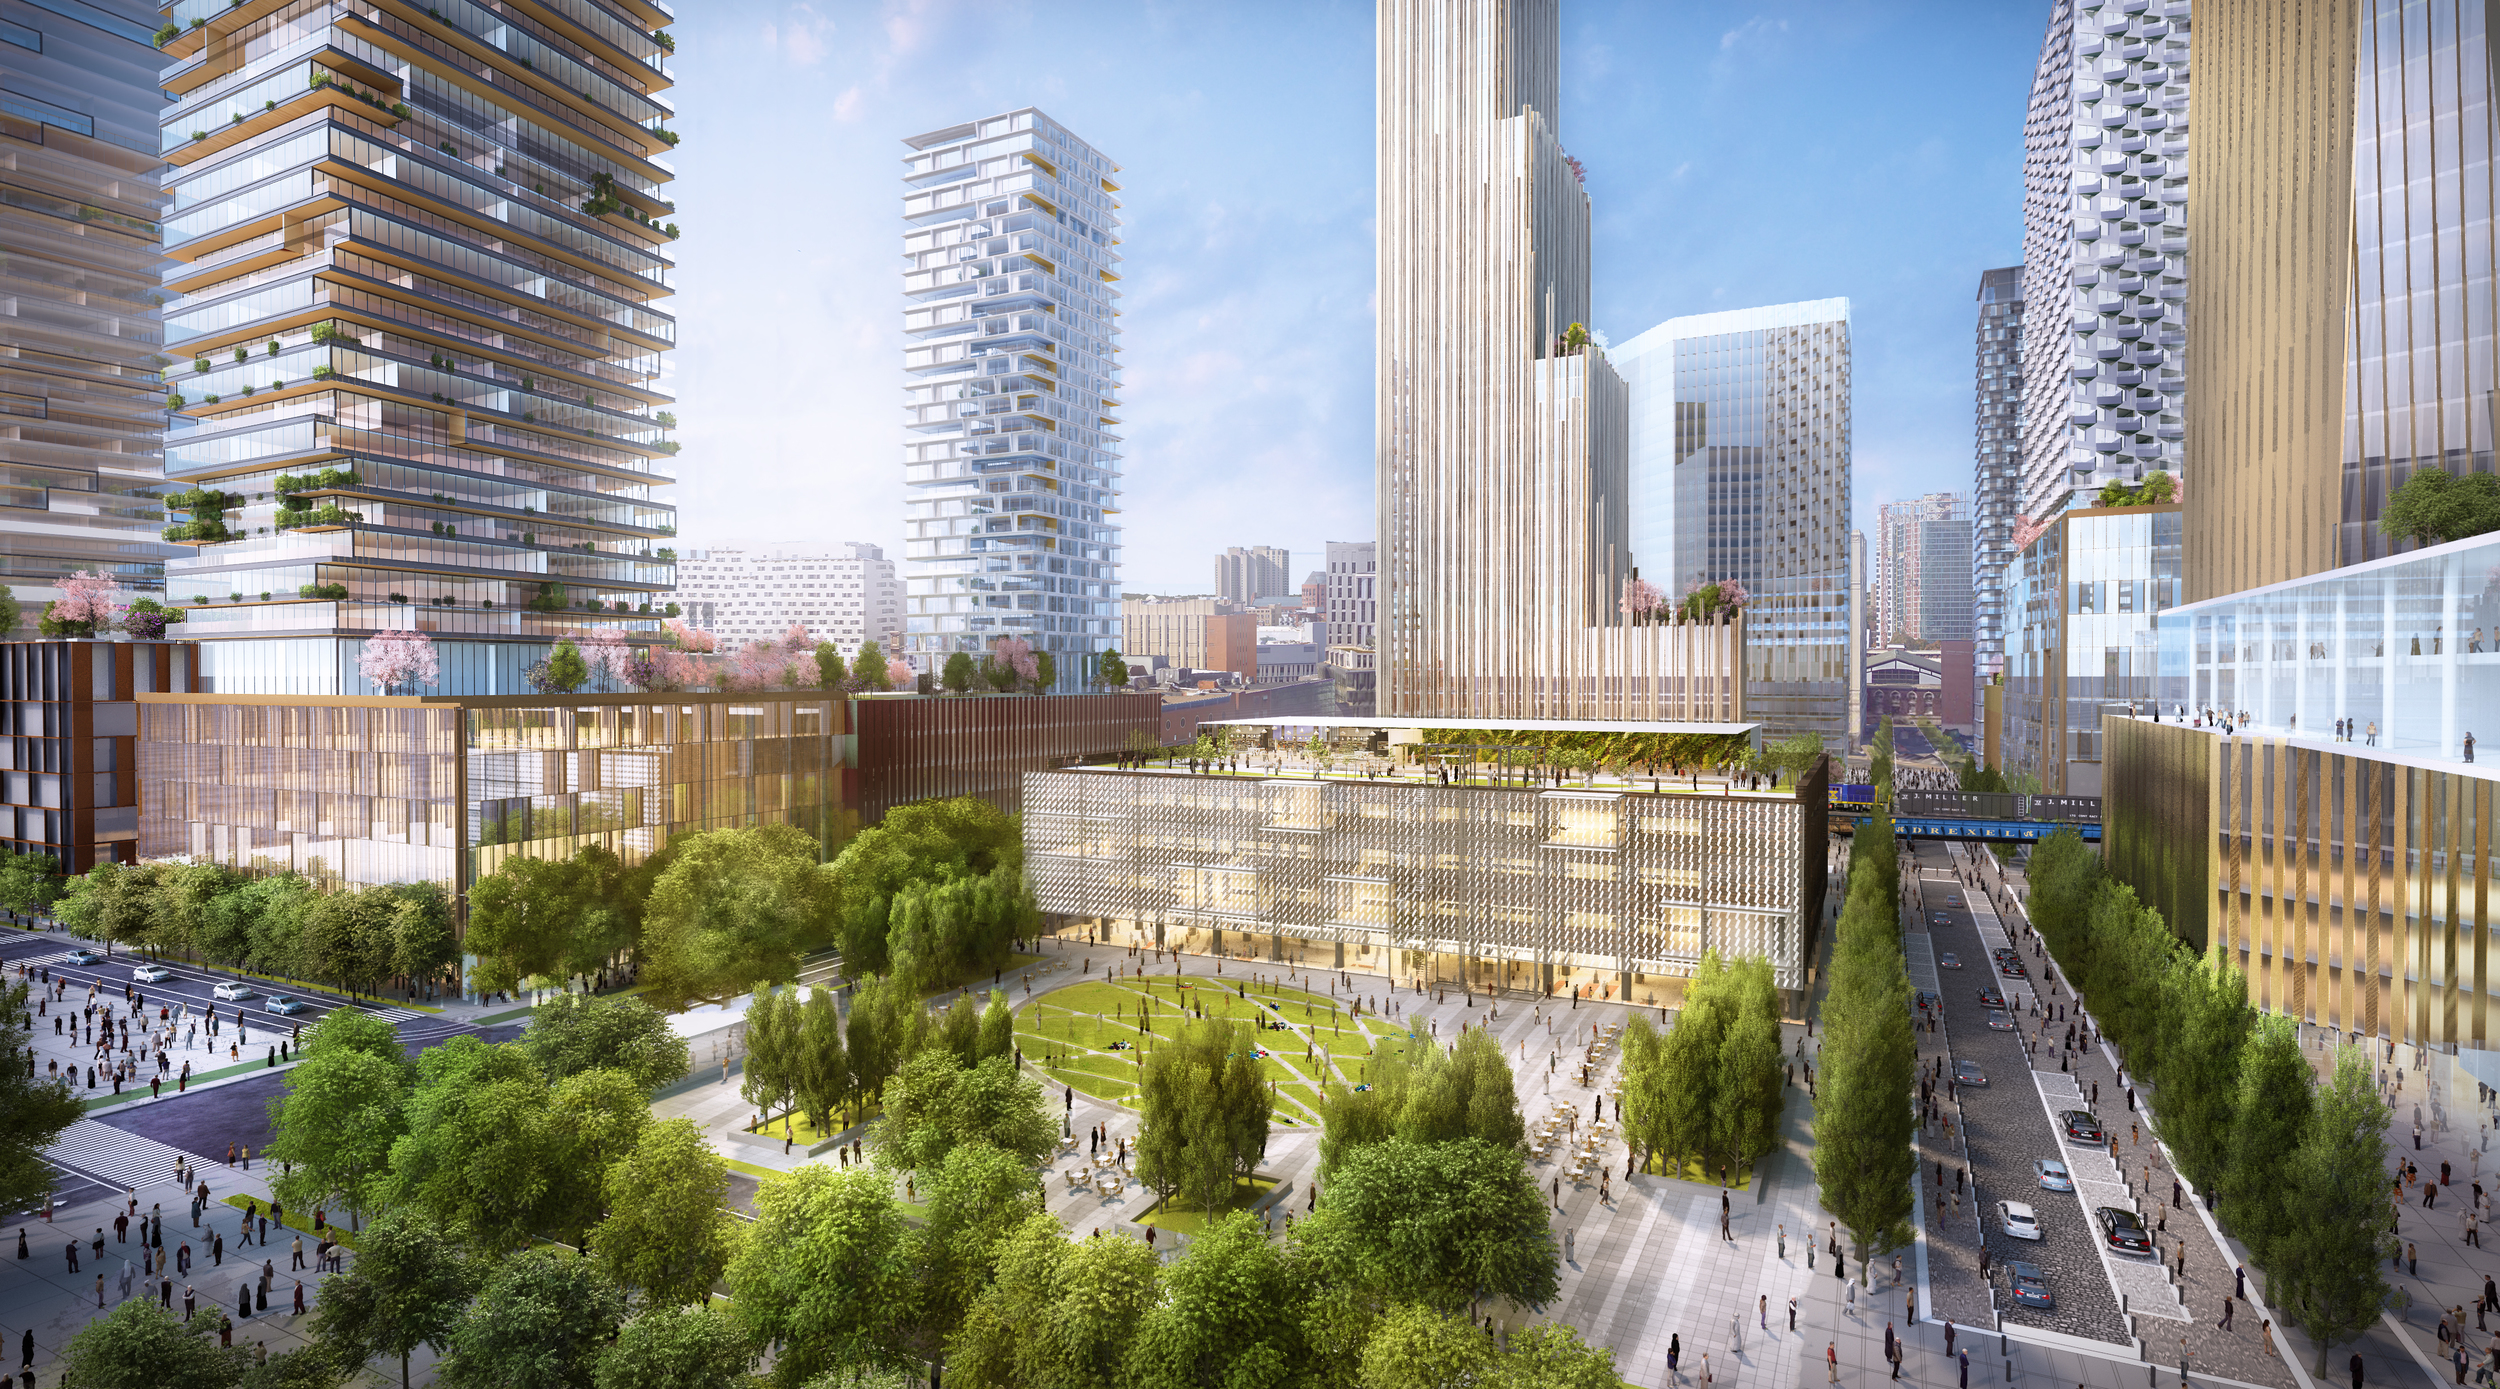 Conceptual rendering of Drexel Square at JFK Boulevard